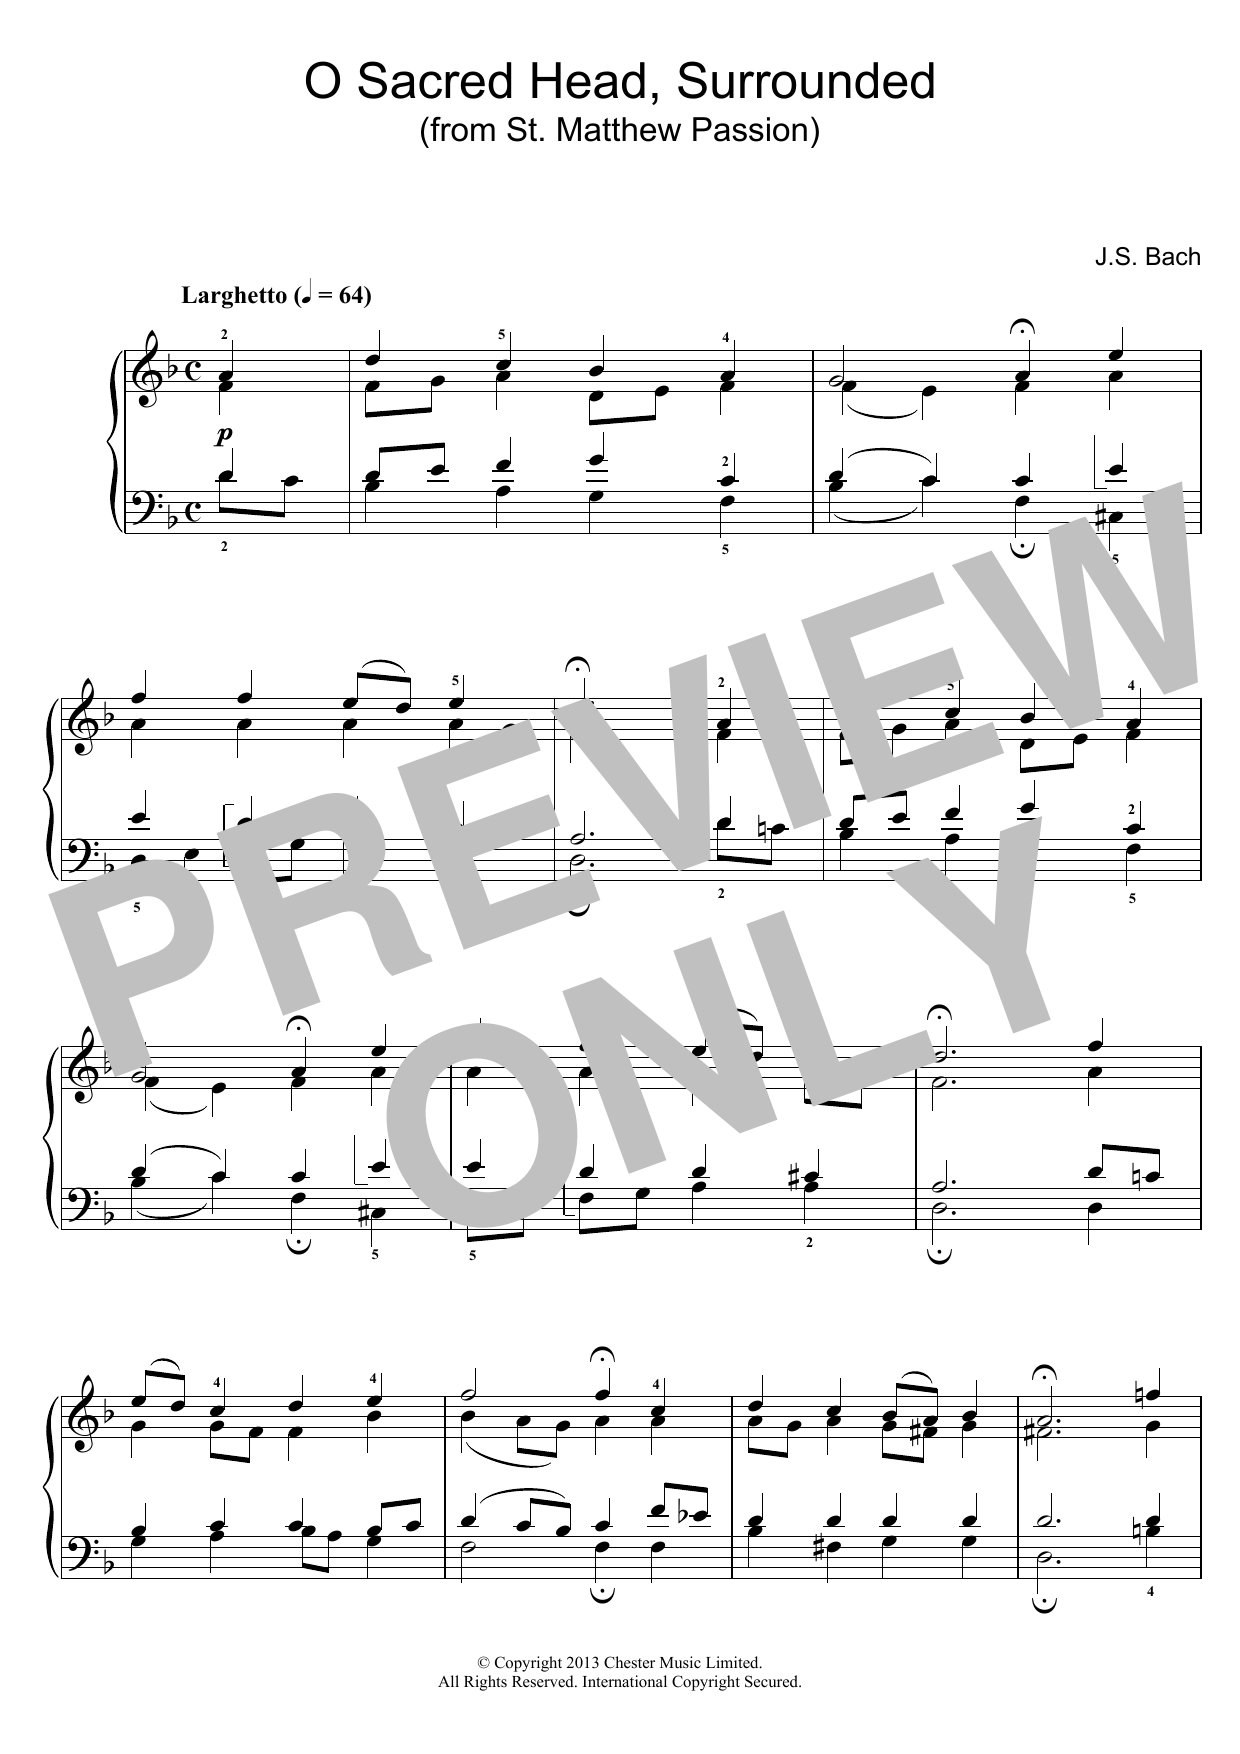 O Sacred Head, Surrounded (from St Matthew Passion) sheet music